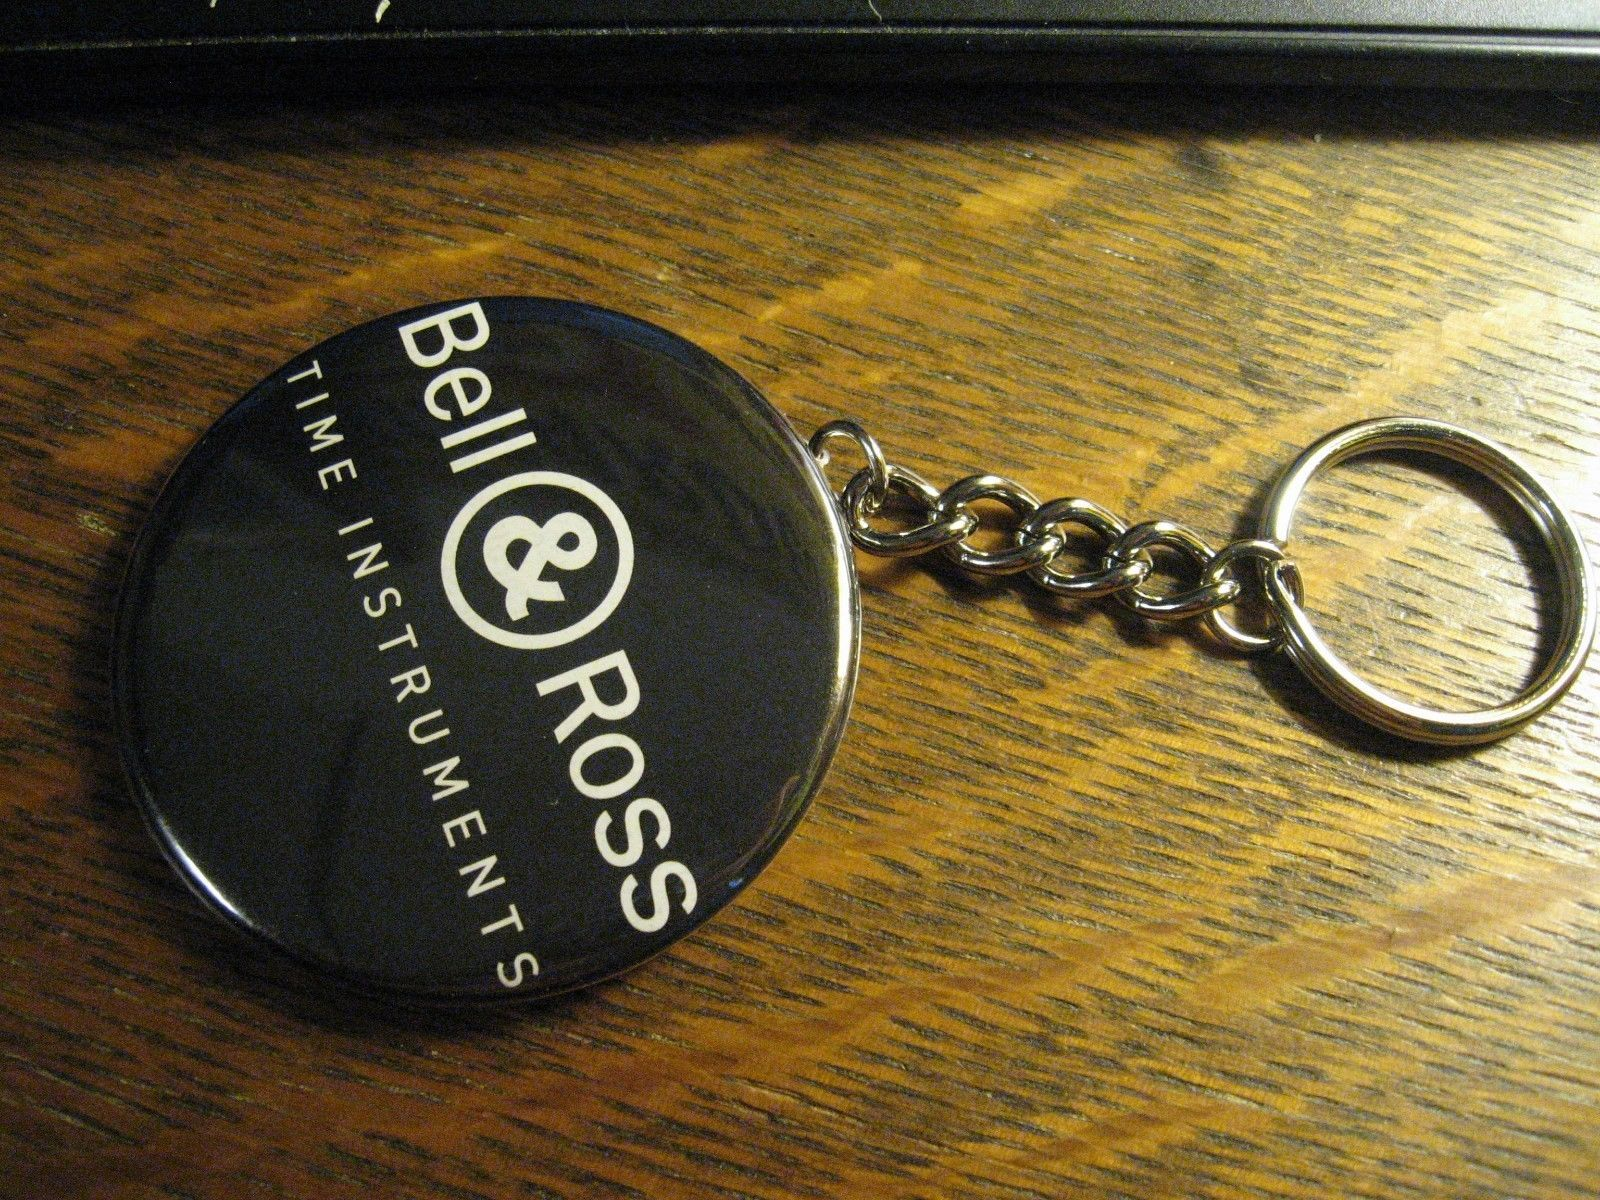 Bell & Ross Logo Keychain - Repurposed Magazine Ad Backpack Purse Clip Ornament